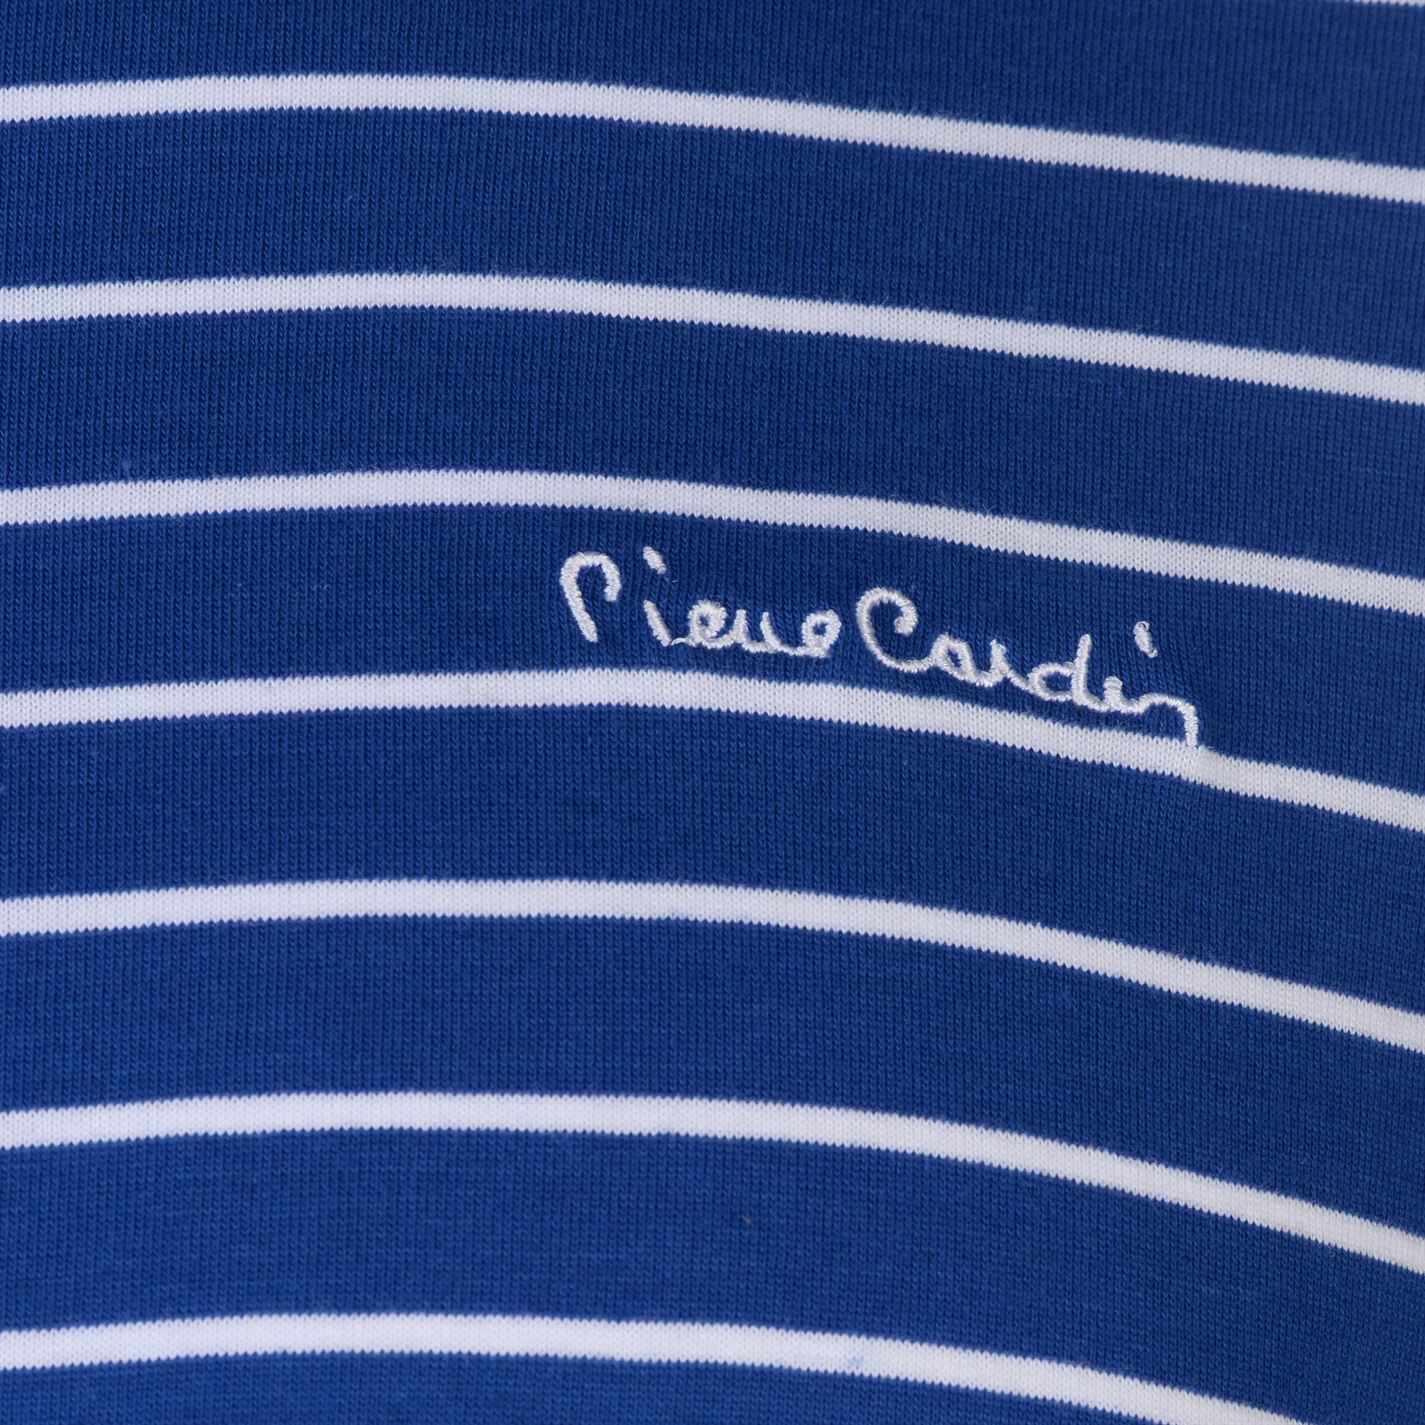 Pierre-Cardin-Mens-Stripe-Ringer-T-Shirt-Crew-Neck-Tee-Top-Short-Sleeve-Cotton thumbnail 16